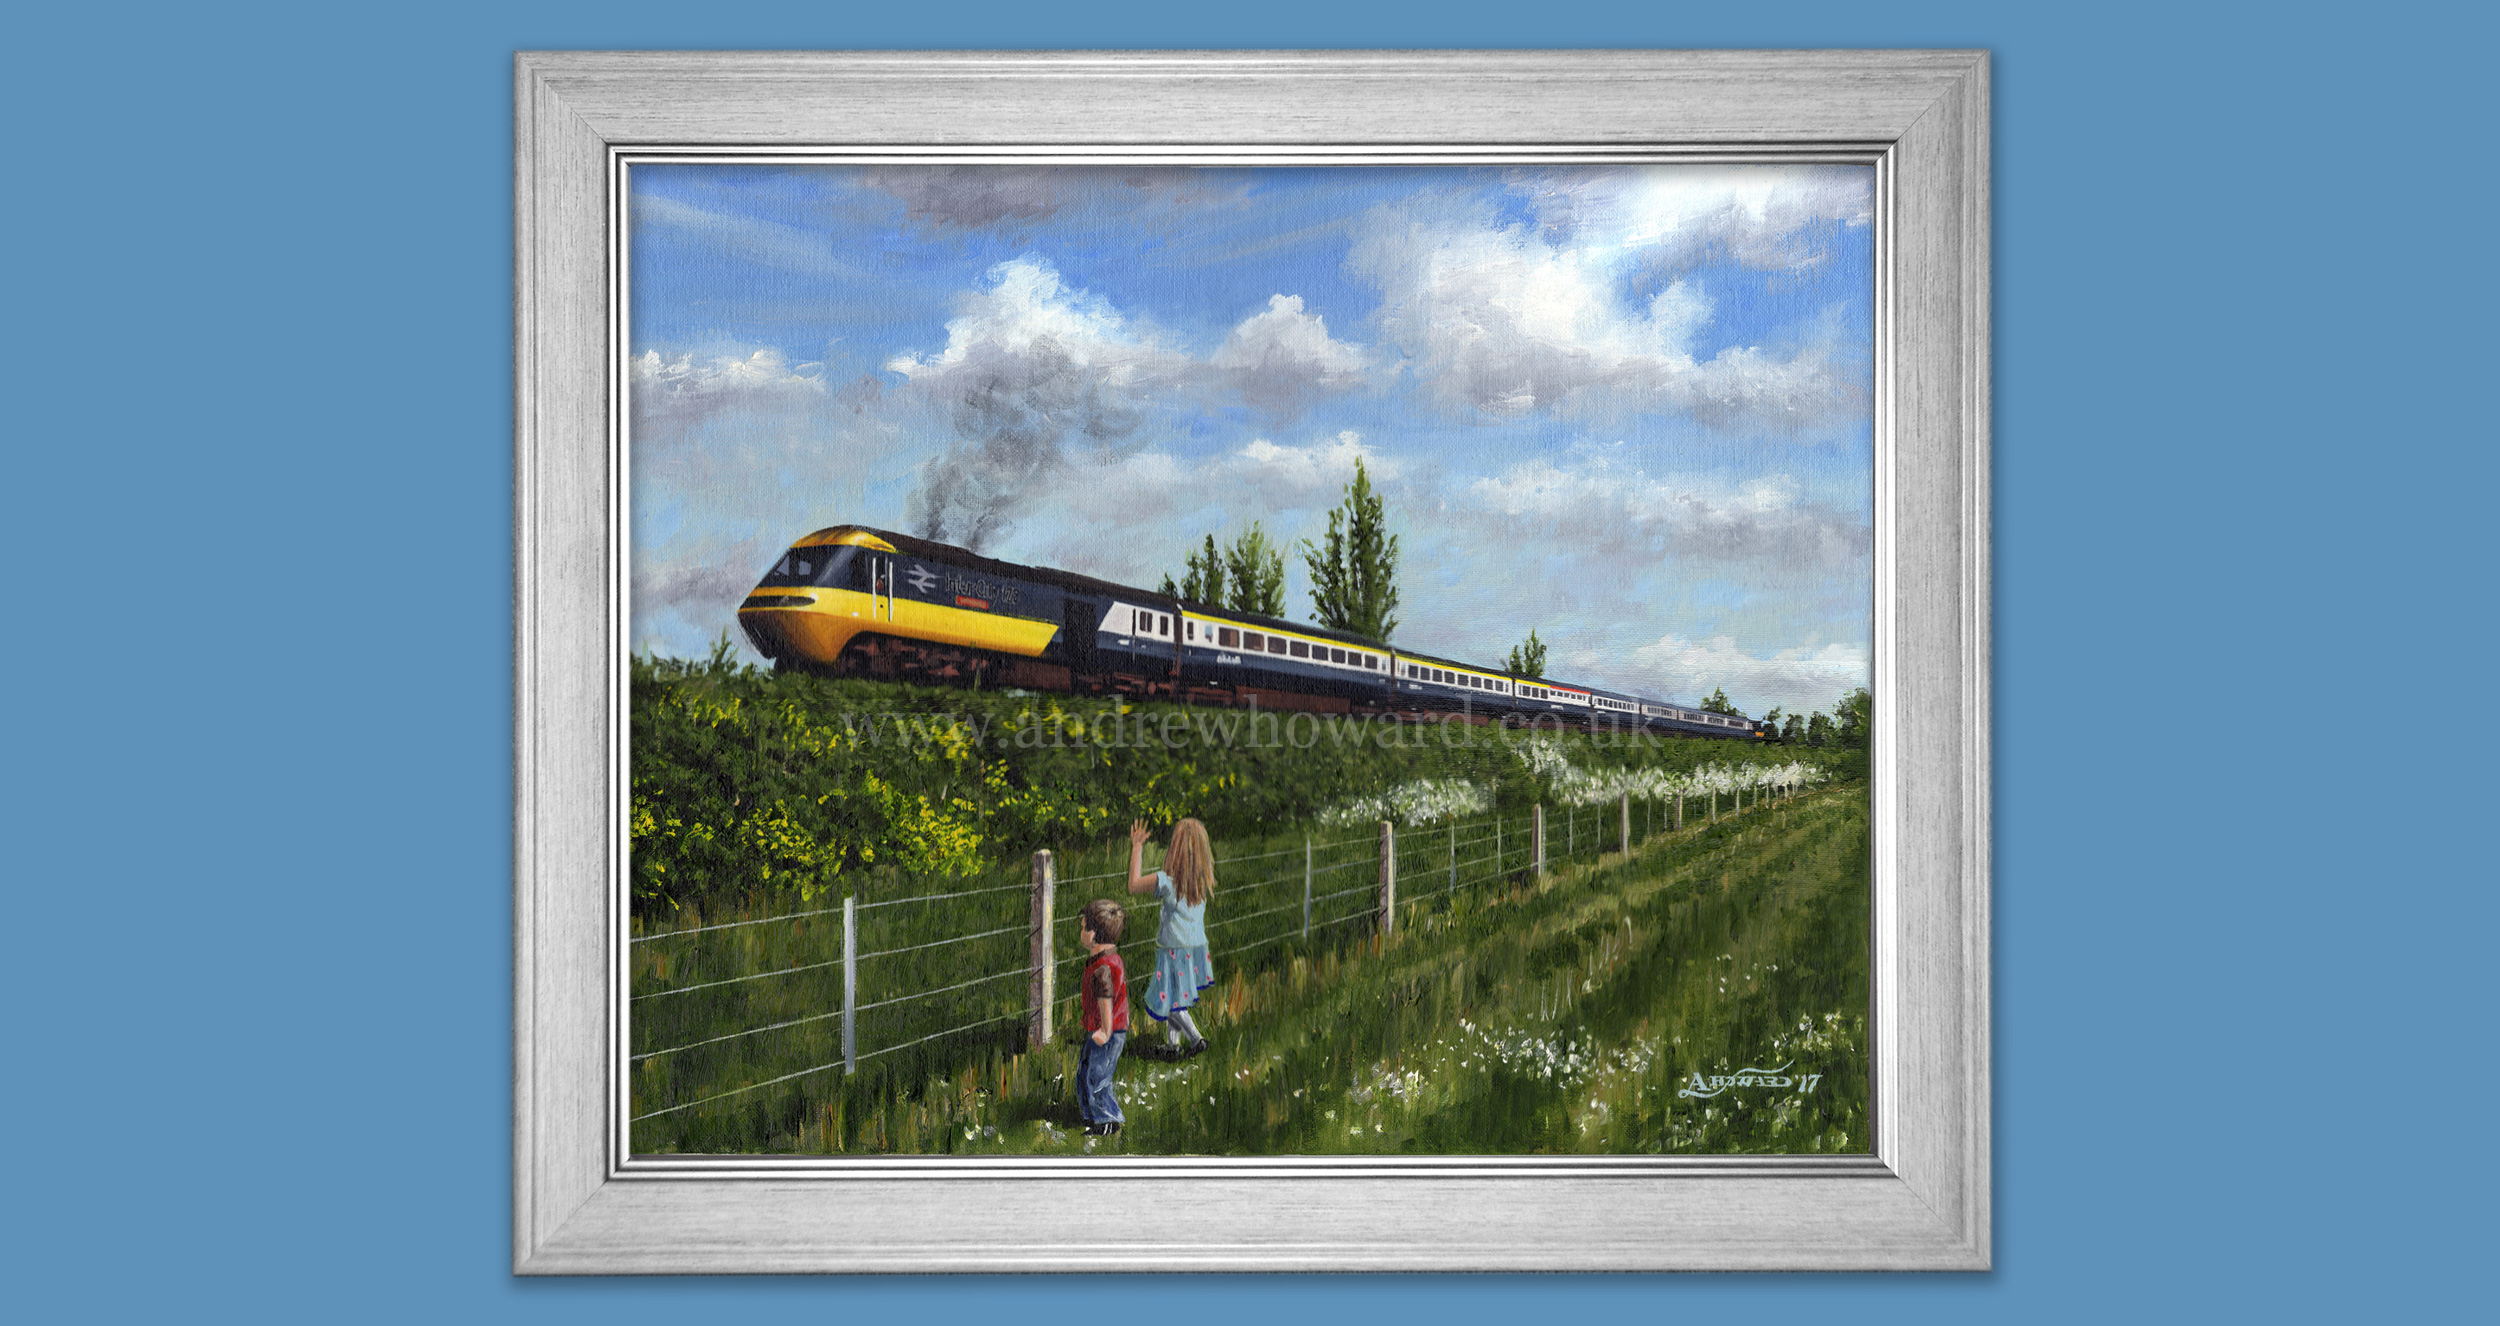 Andrew Howard Art - Inter-City 125 oil painting